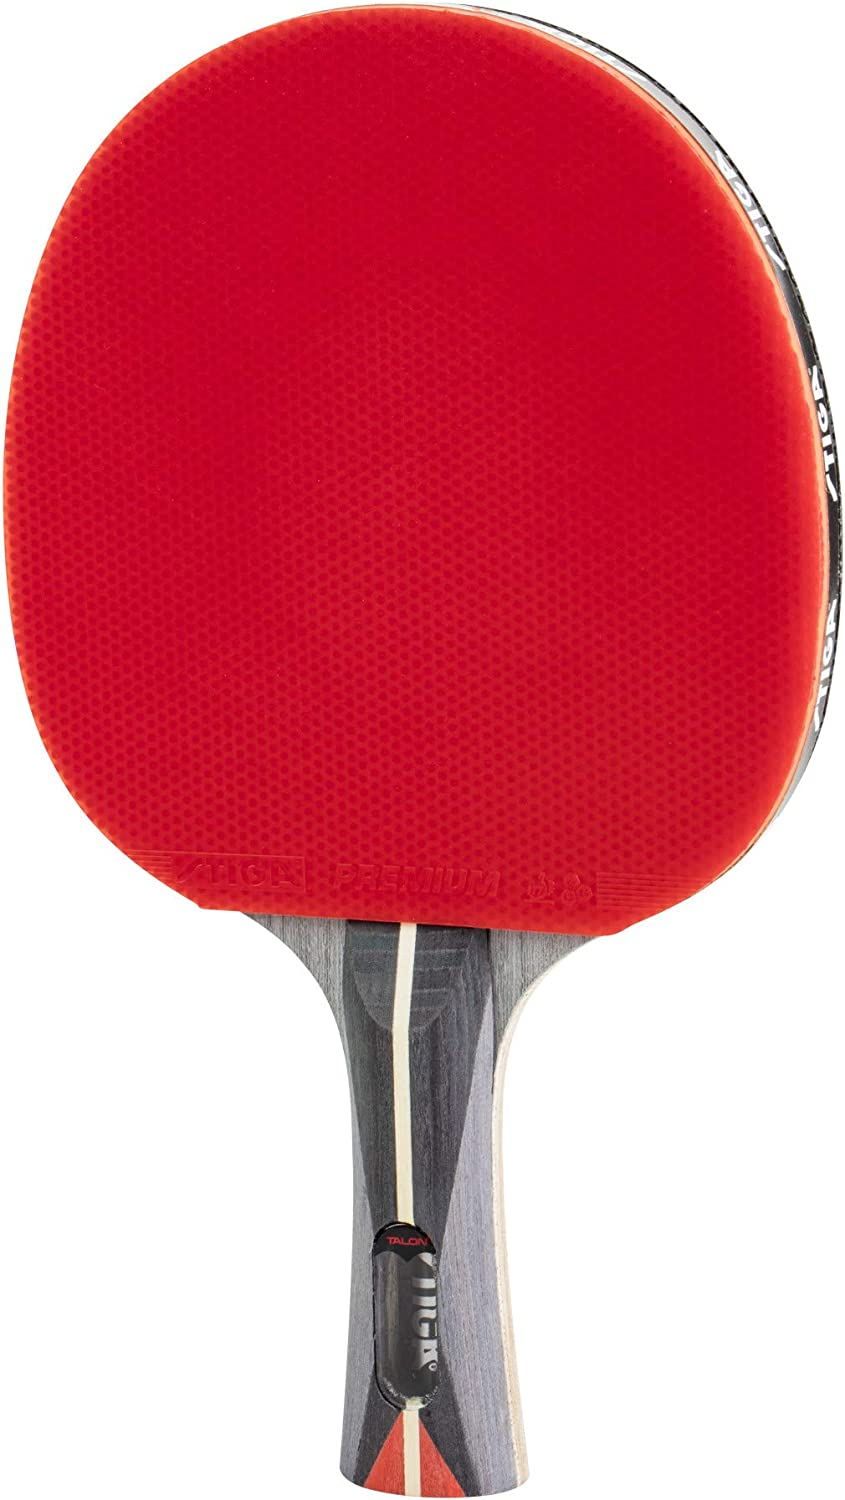 STIGA Talon Table Quality inspection Easy-to-use Red Racket Tennis